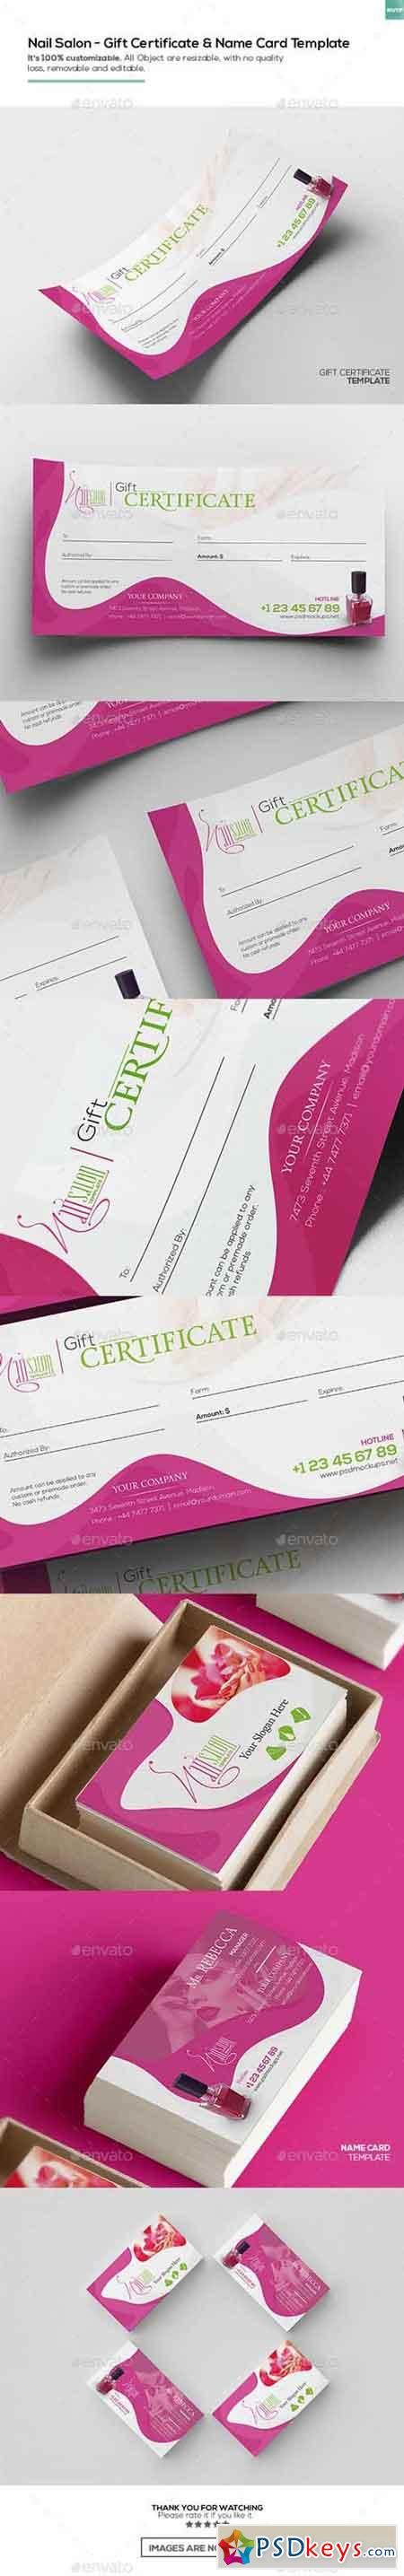 Nail salon gift certificate and business card template 16150102 nail salon gift certificate and business card template 16150102 magicingreecefo Image collections